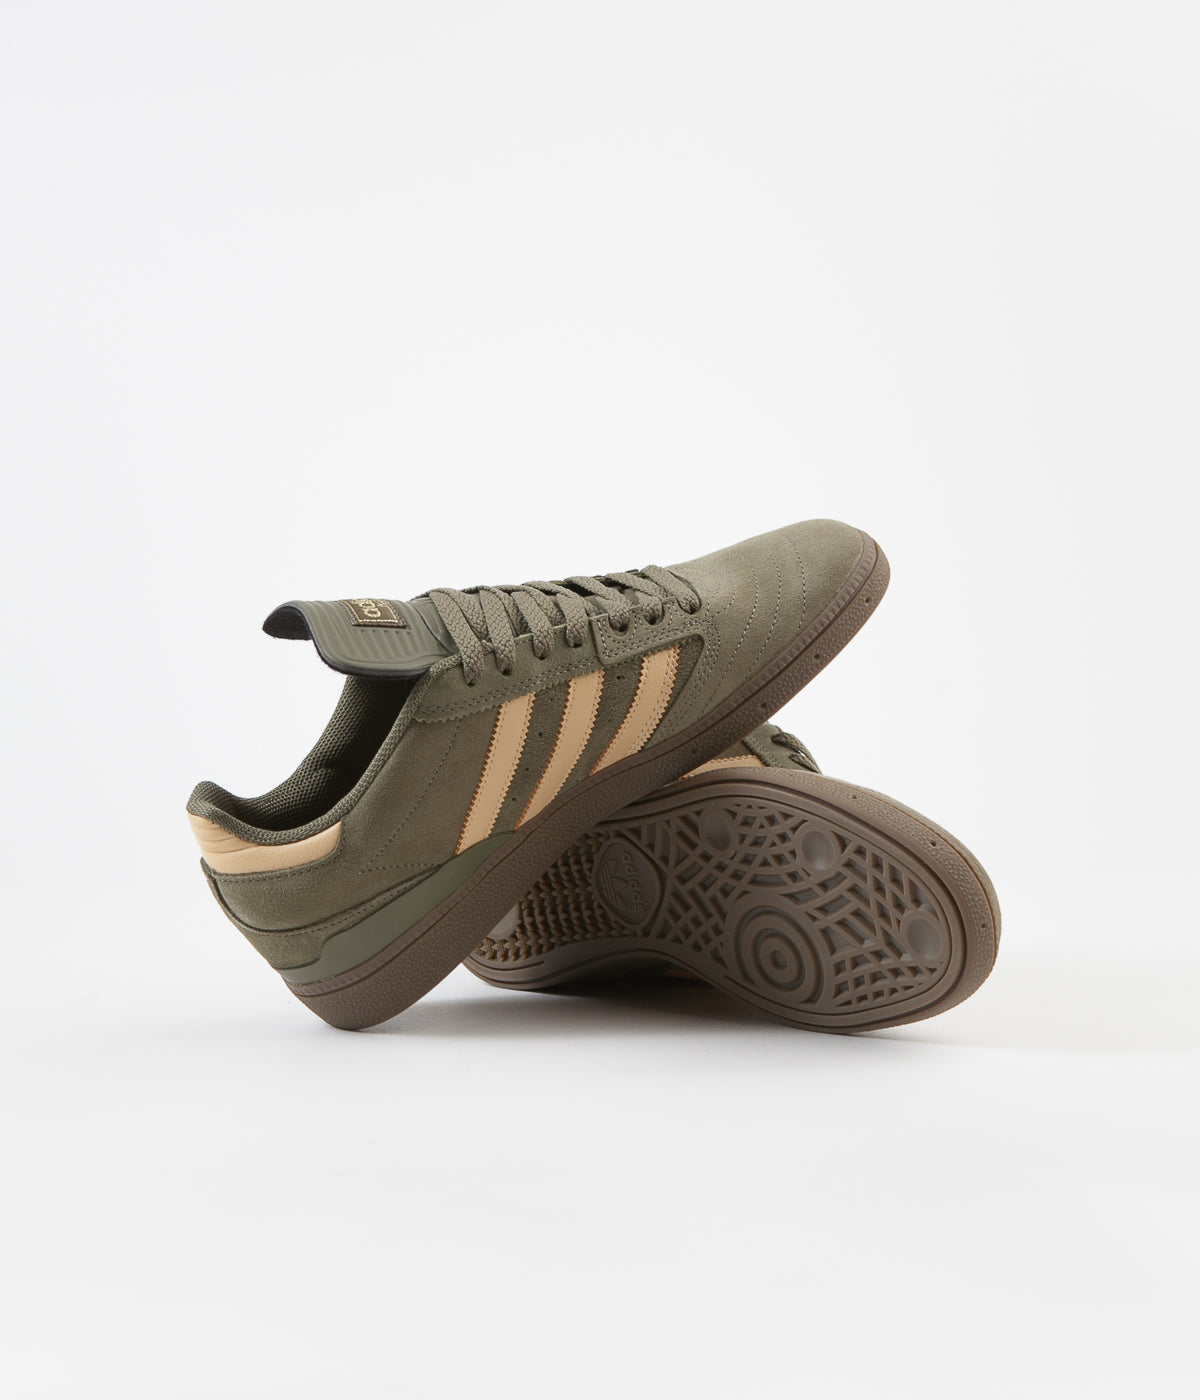 Adidas Busenitz Shoes - Raw Khaki / Glow Orange / White